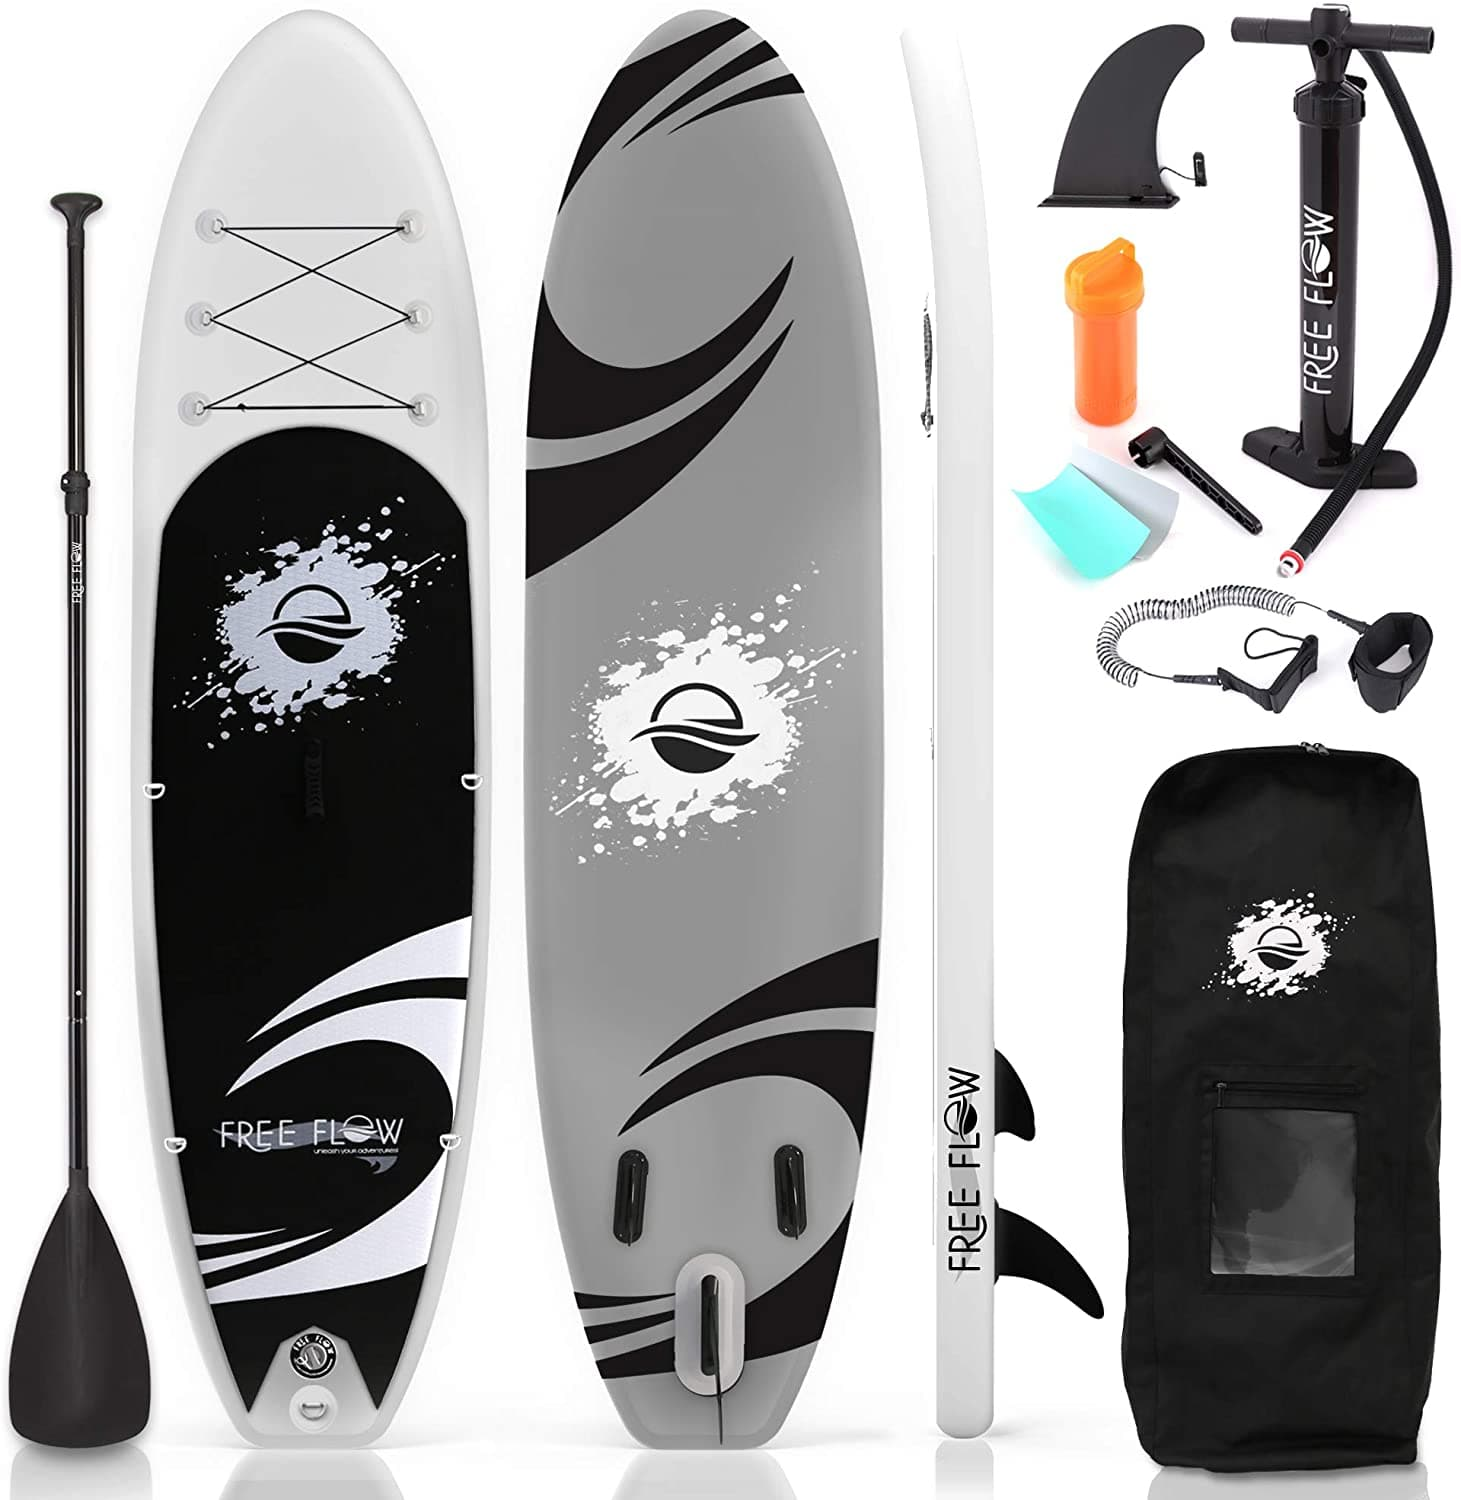 SereneLife Infaltable SUP